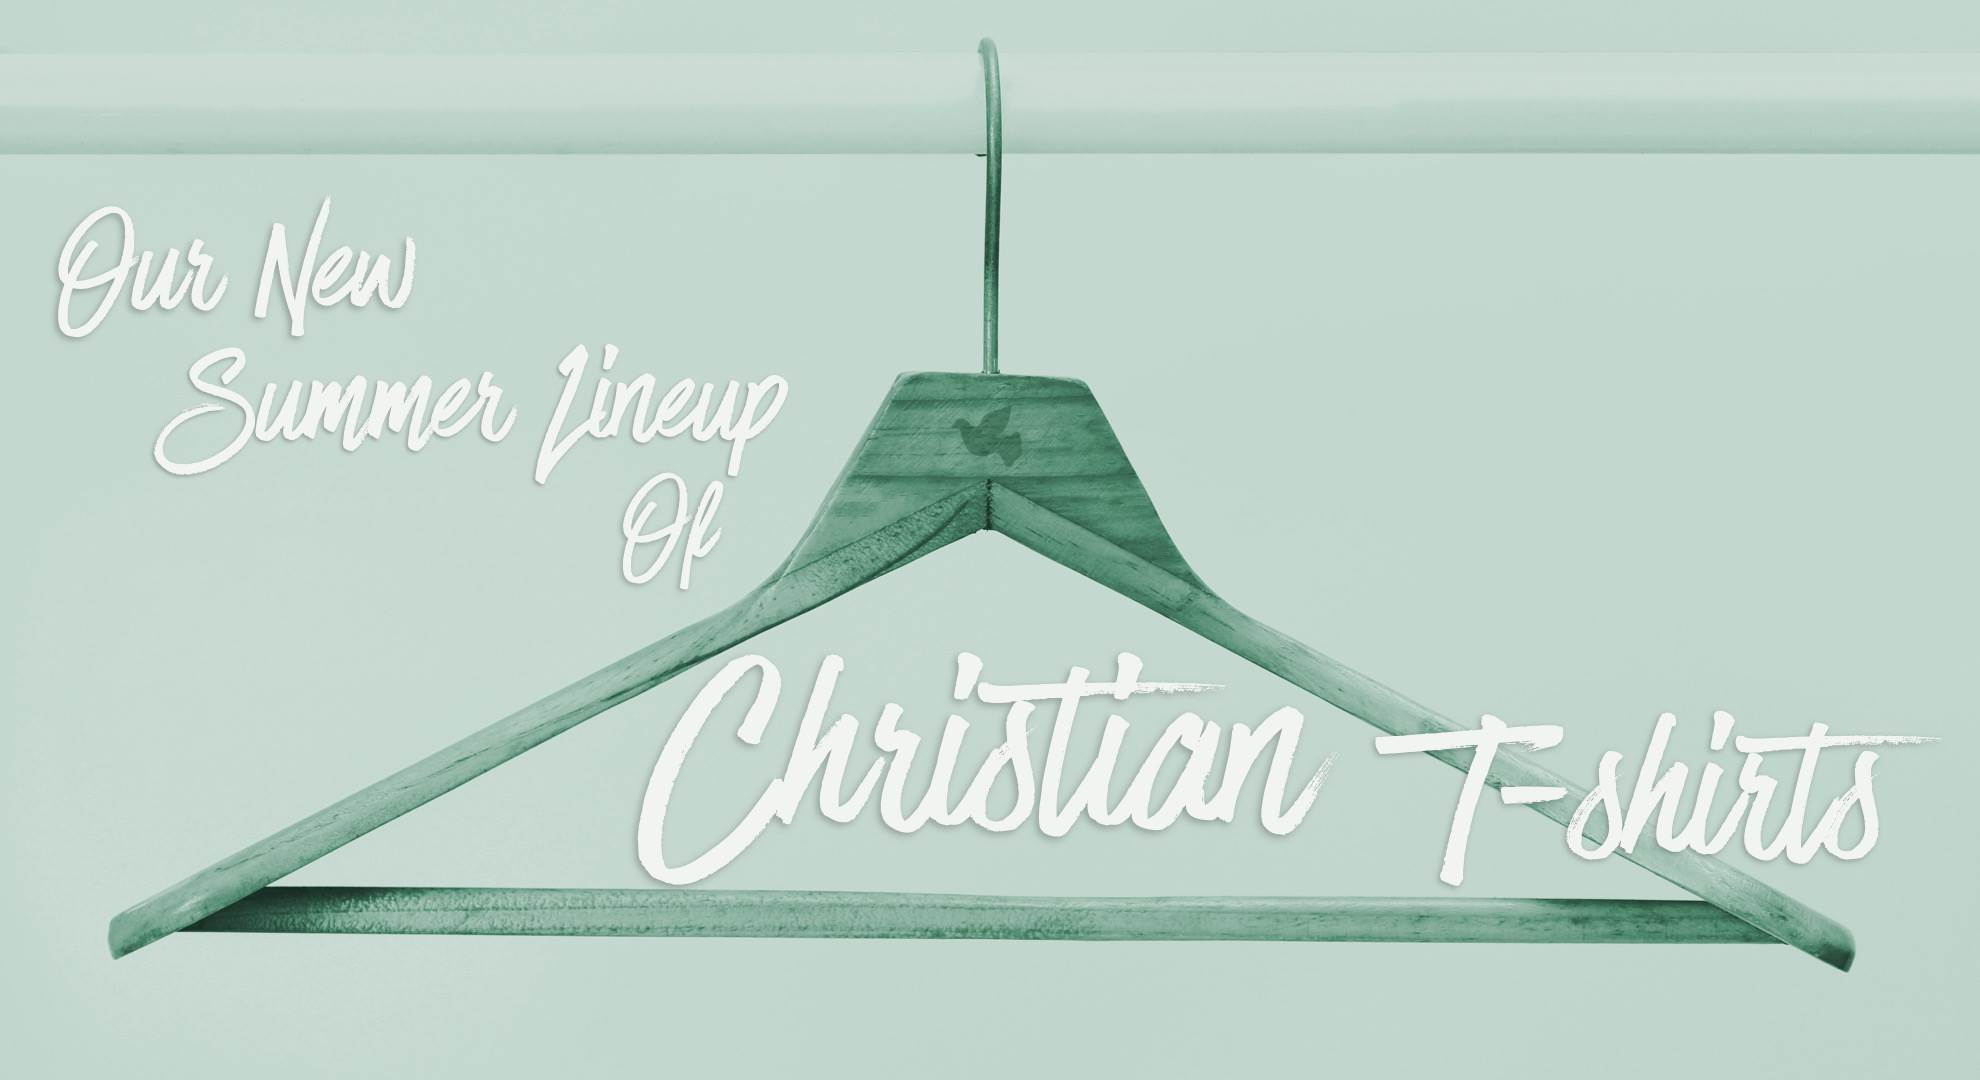 Our New Summer Lineup Of Christian T-Shirts is Here